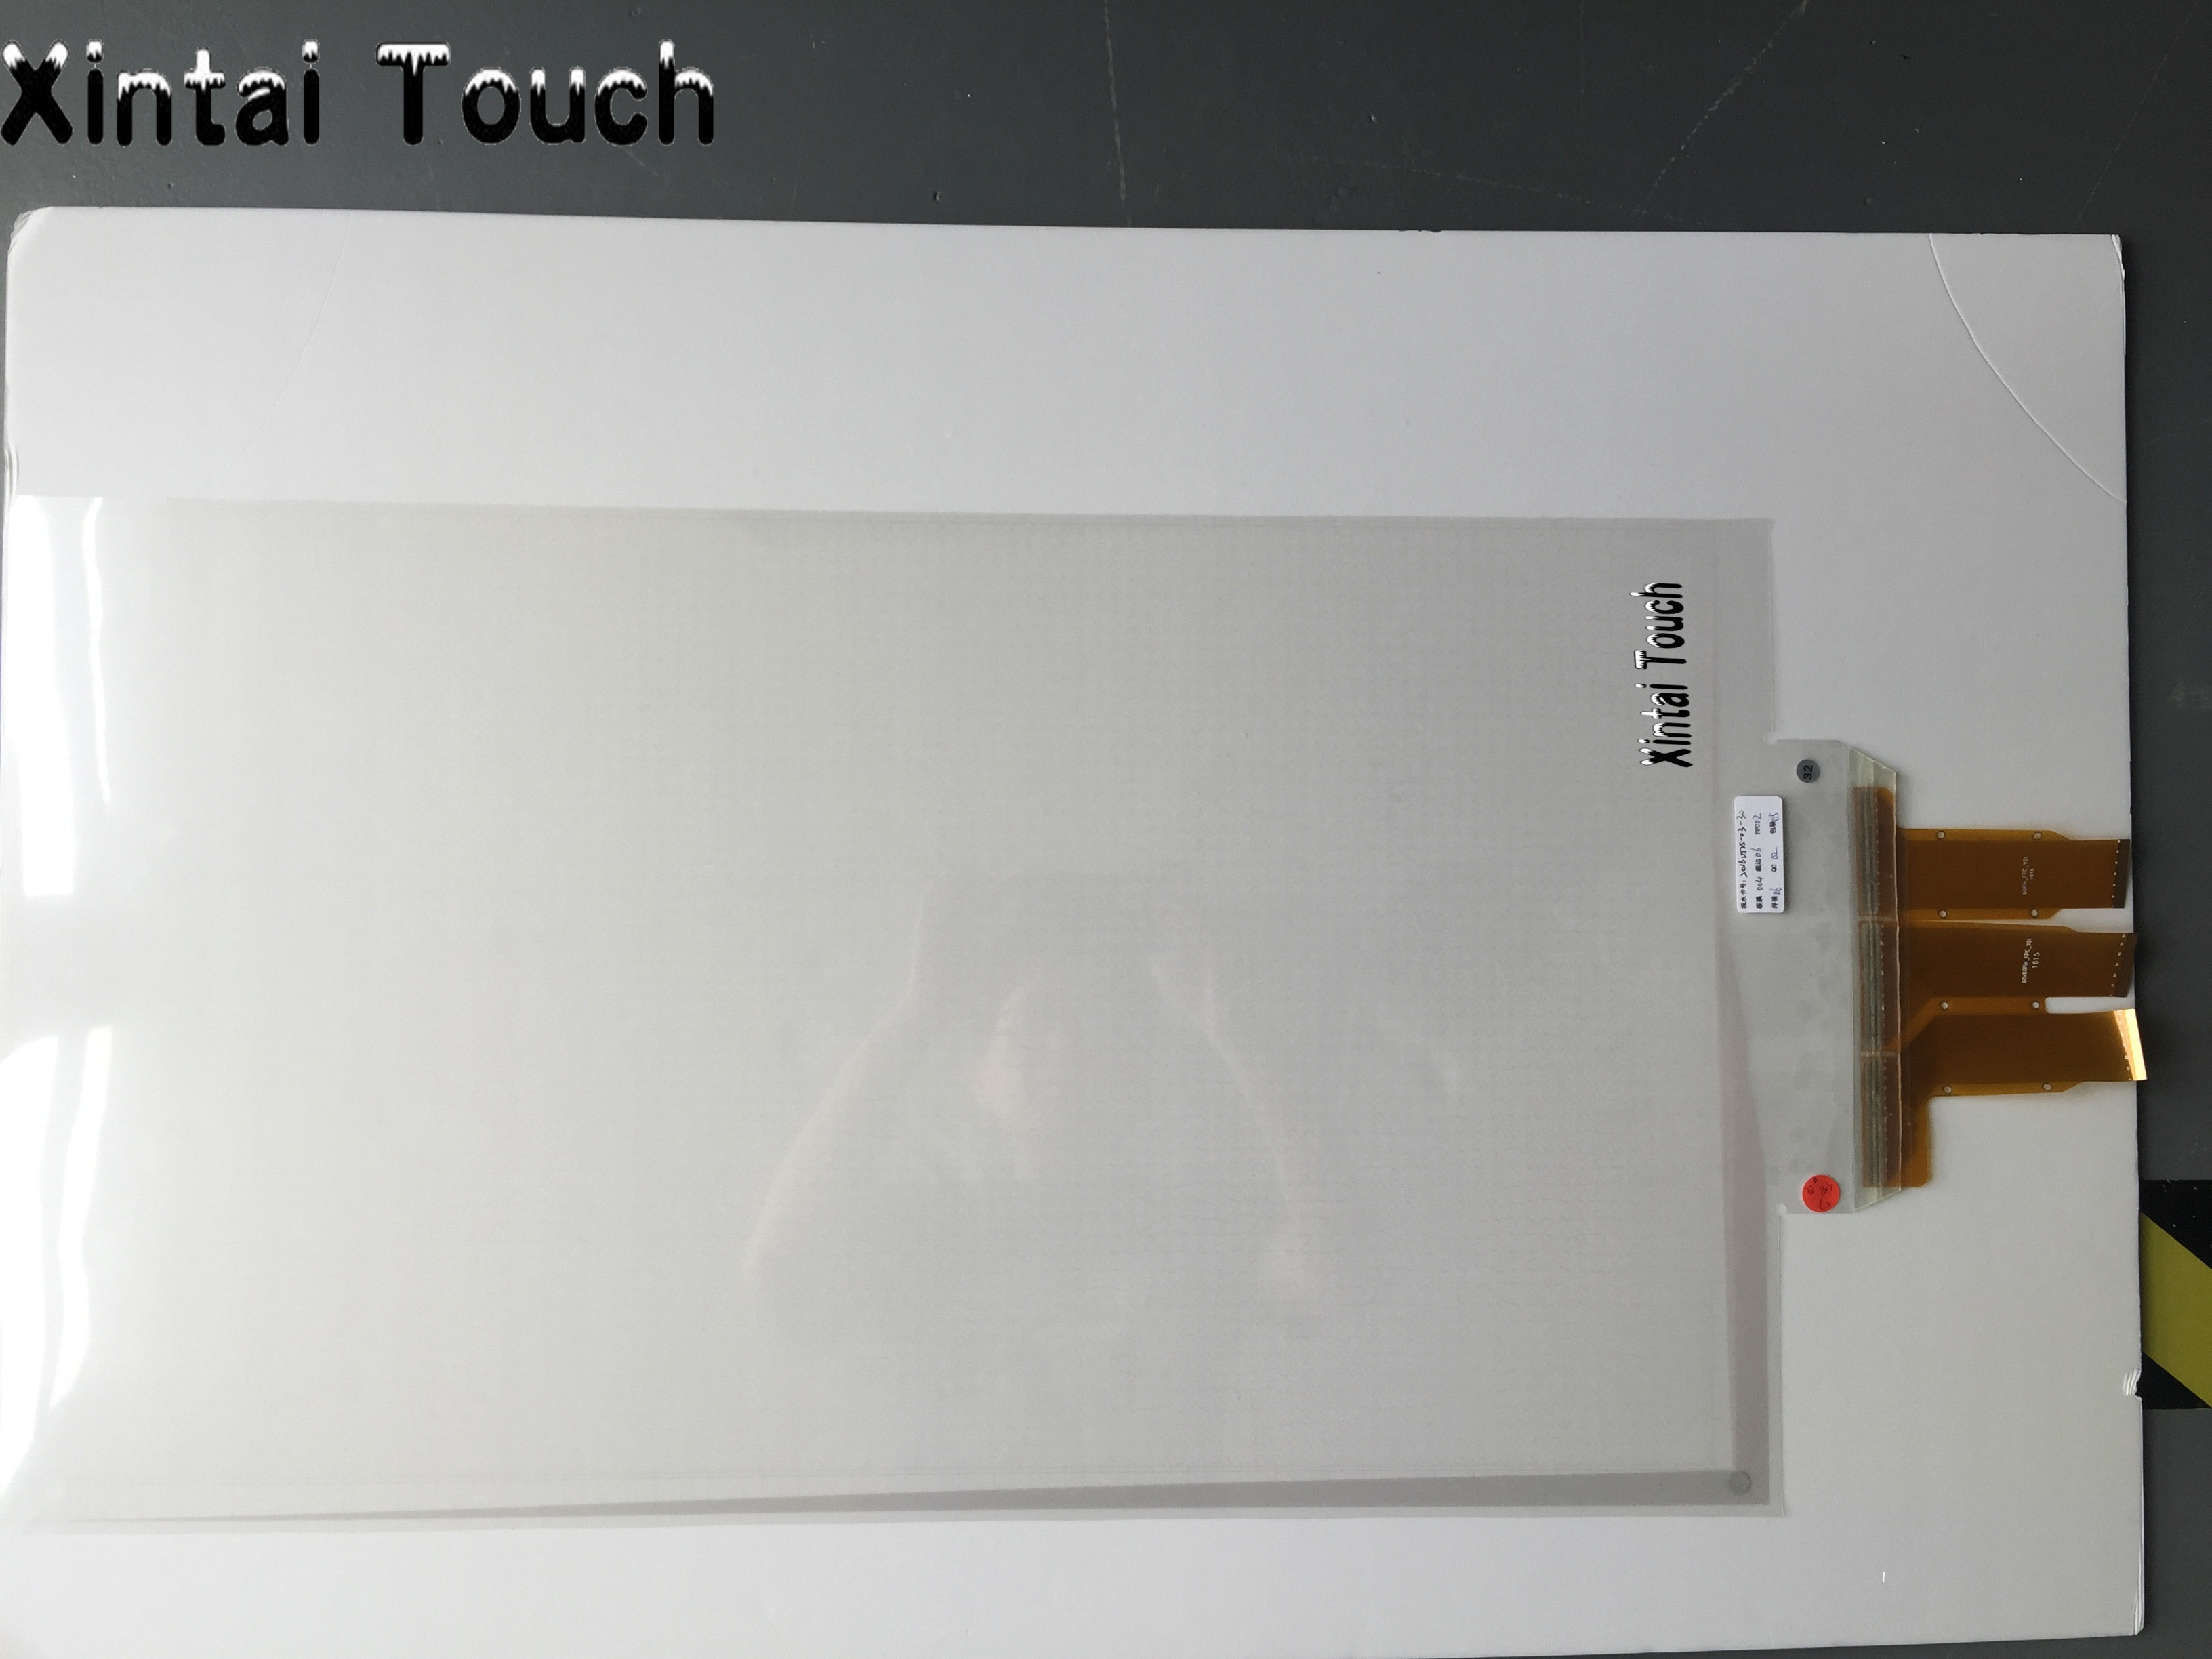 52 cheap transparent touch foil/film, 4 points Multi interactive touch screen foil for touch table 27 transparent interactive multi touch foil truly 2 touch points capacitive touch screen foil film 27 inch